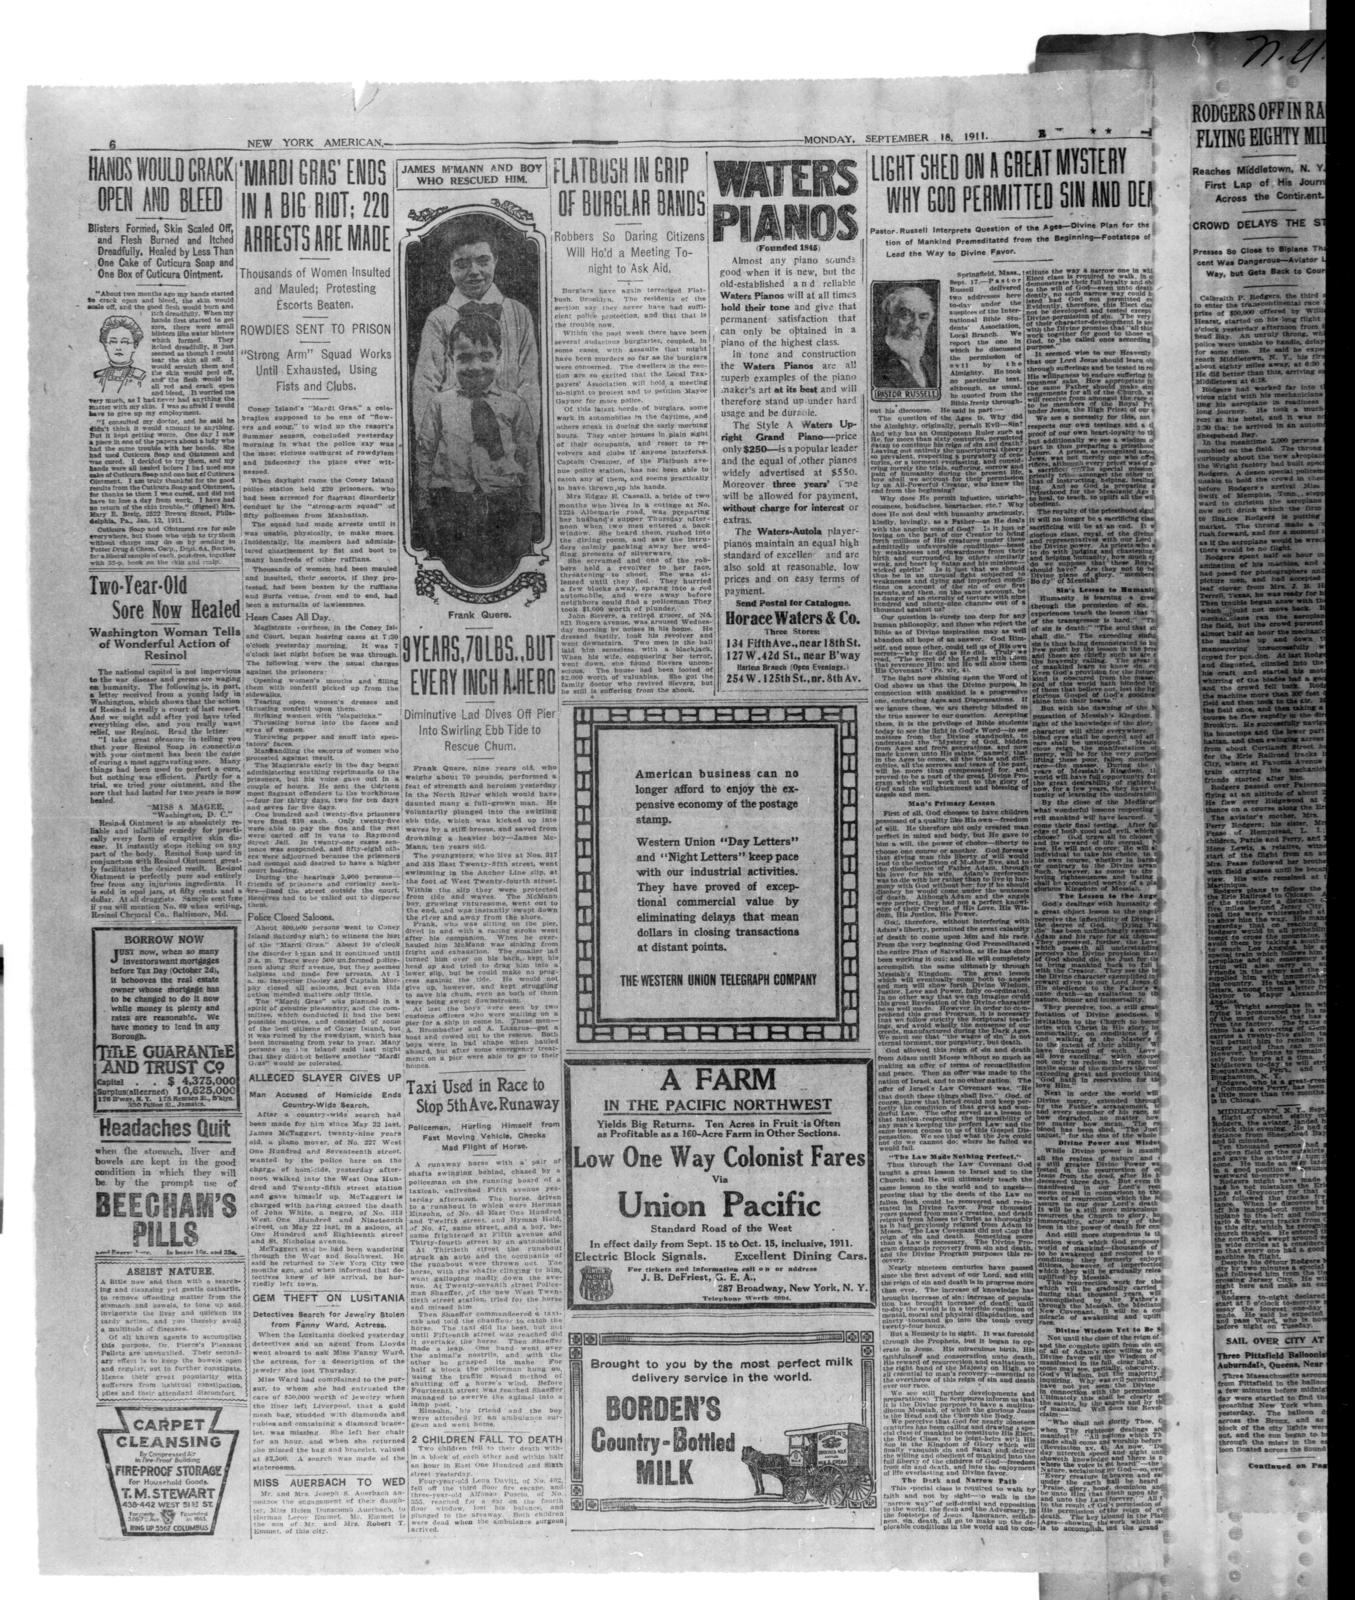 [Pages 5 and 6 of New York American, 18 September 1911]